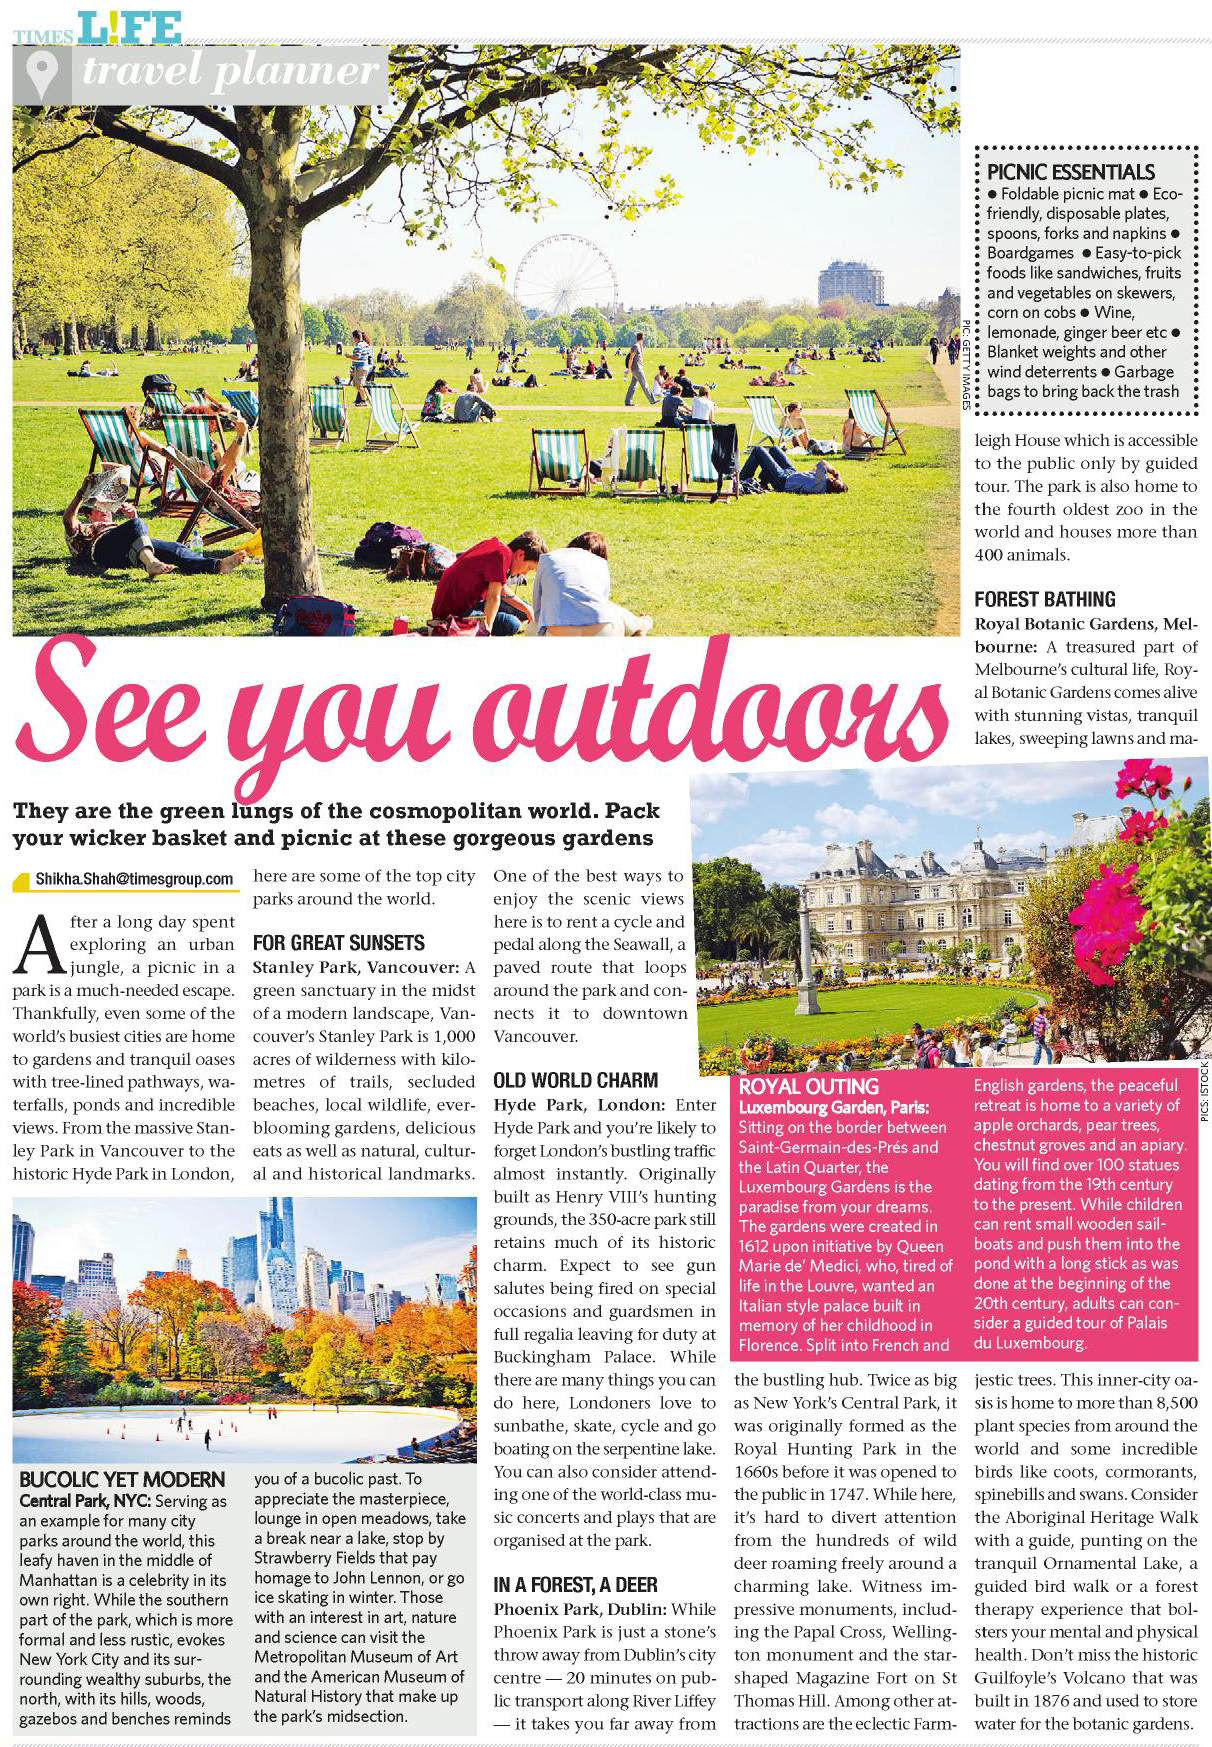 See you outdoors, City parks, Feb 2, 2020 - Times Life